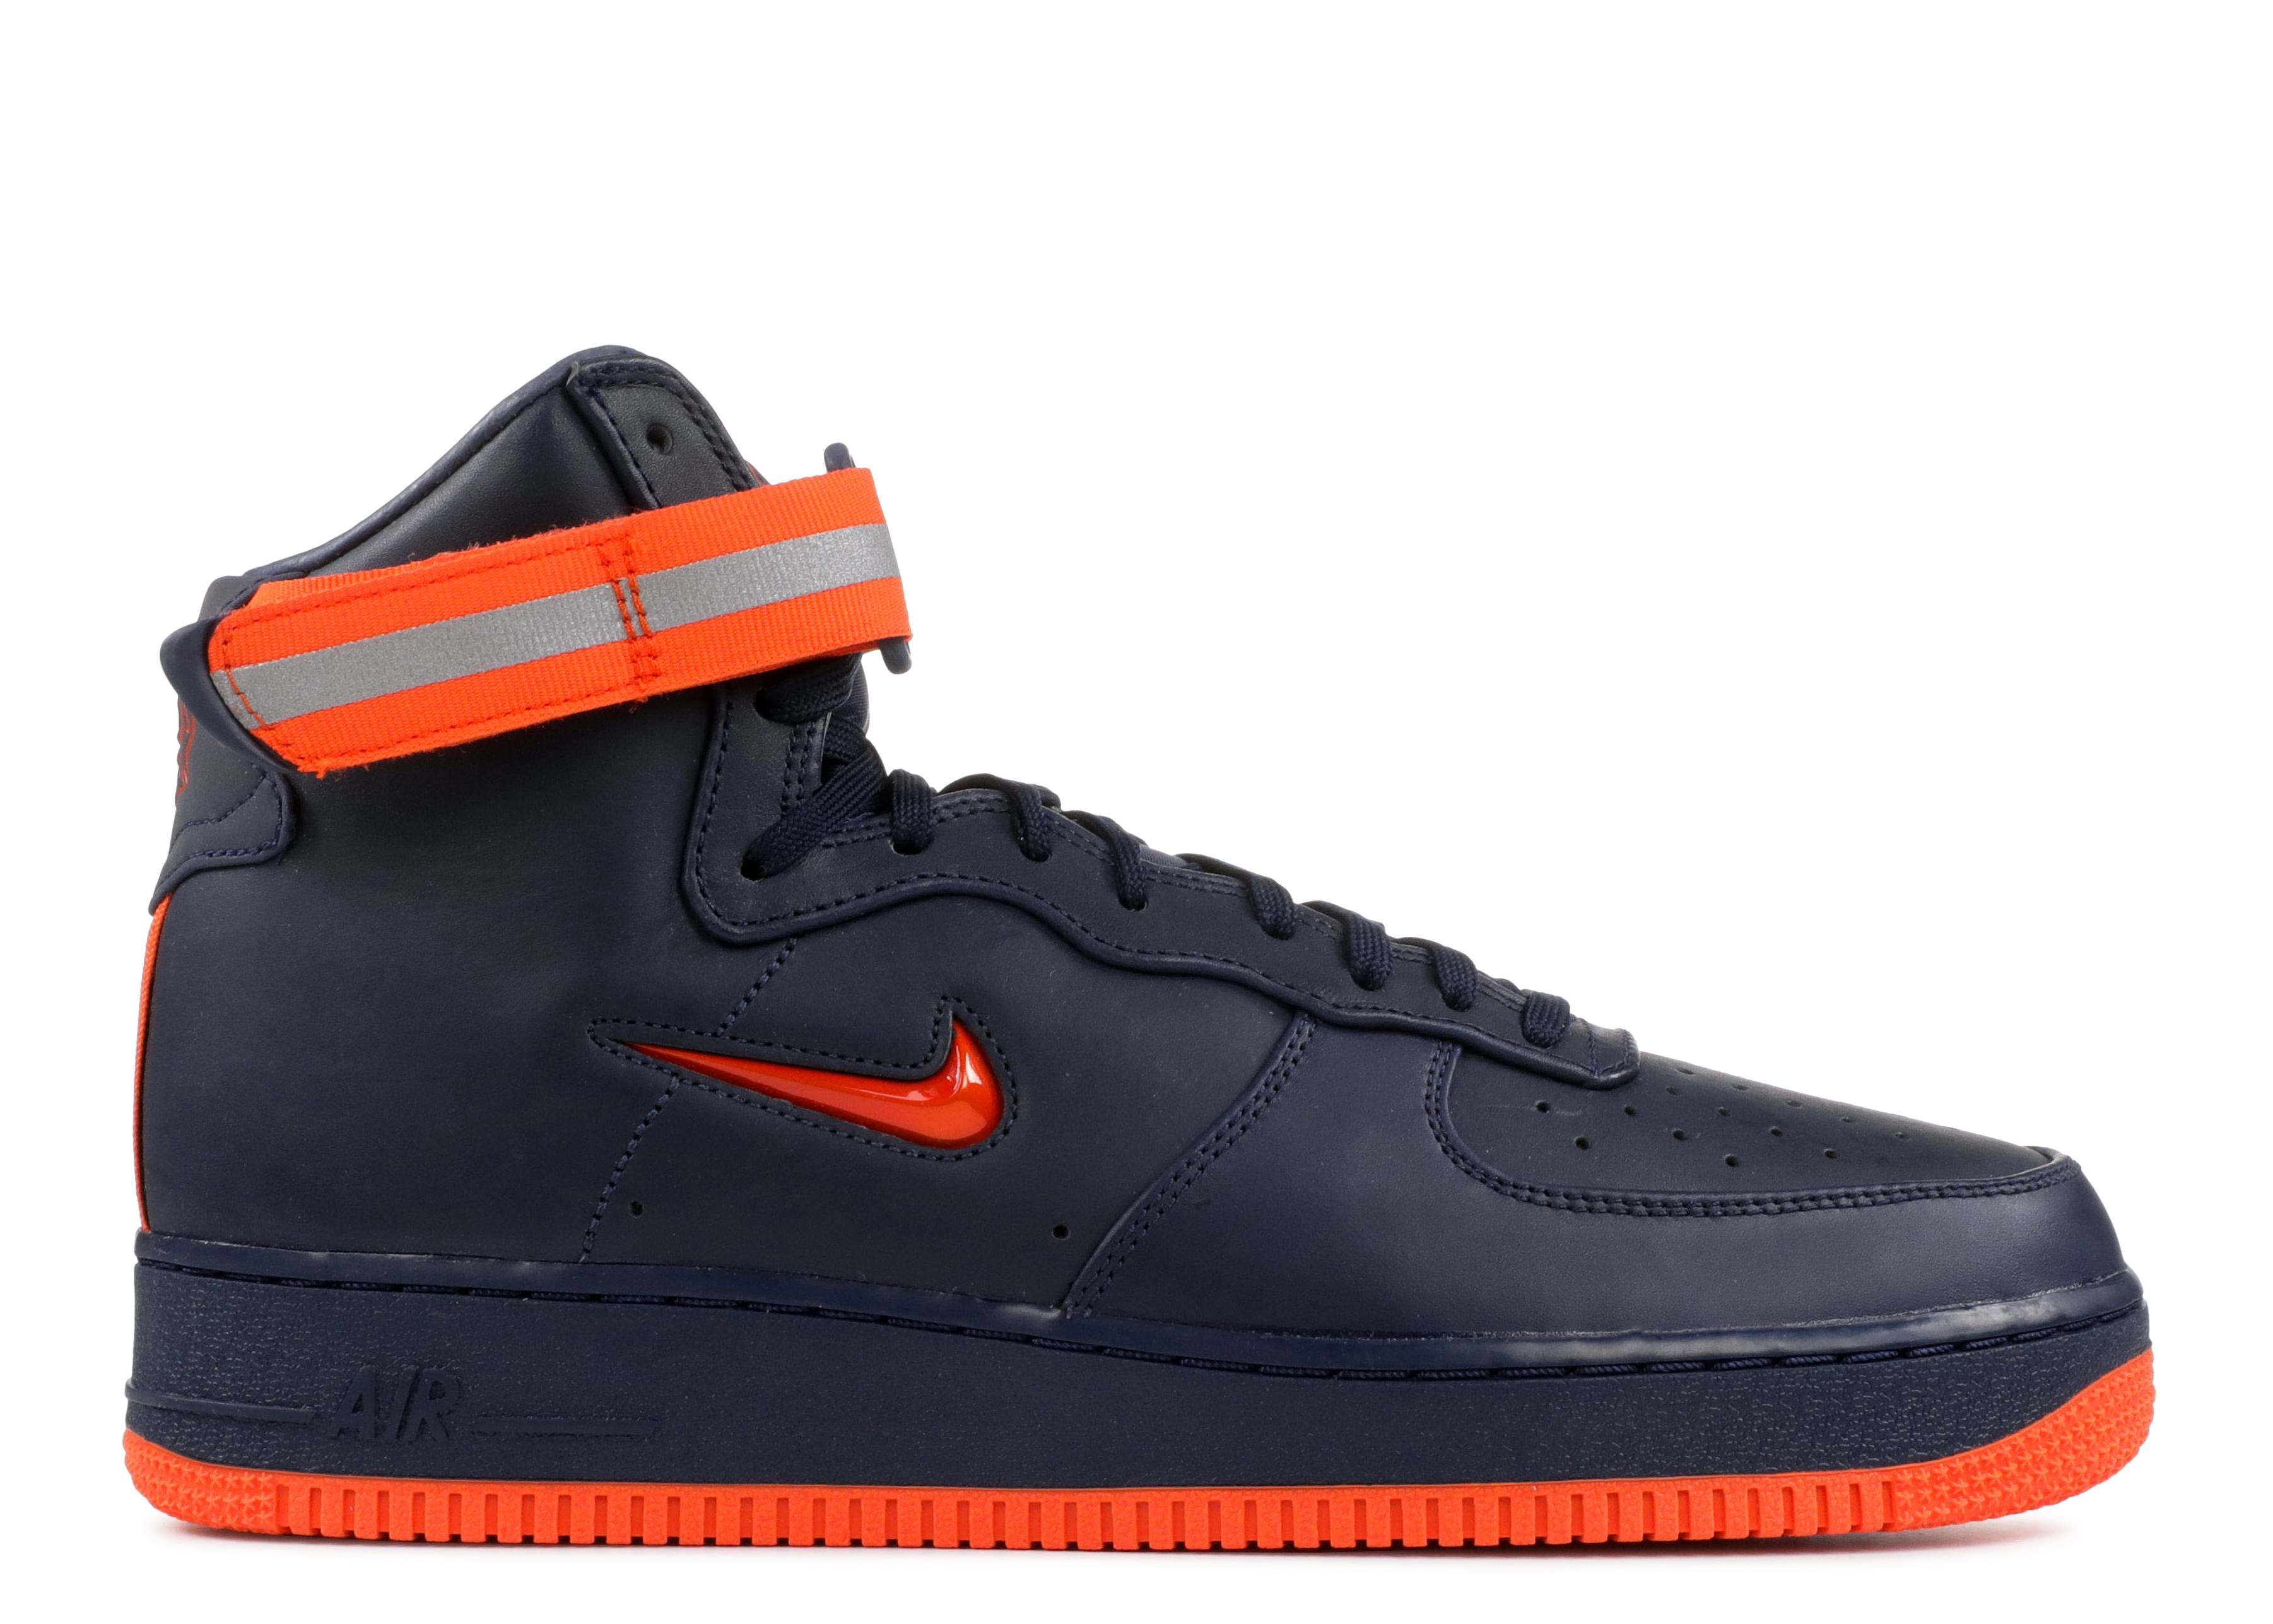 new product 8883f c77d4 nike. air force 1 high retro prm qs